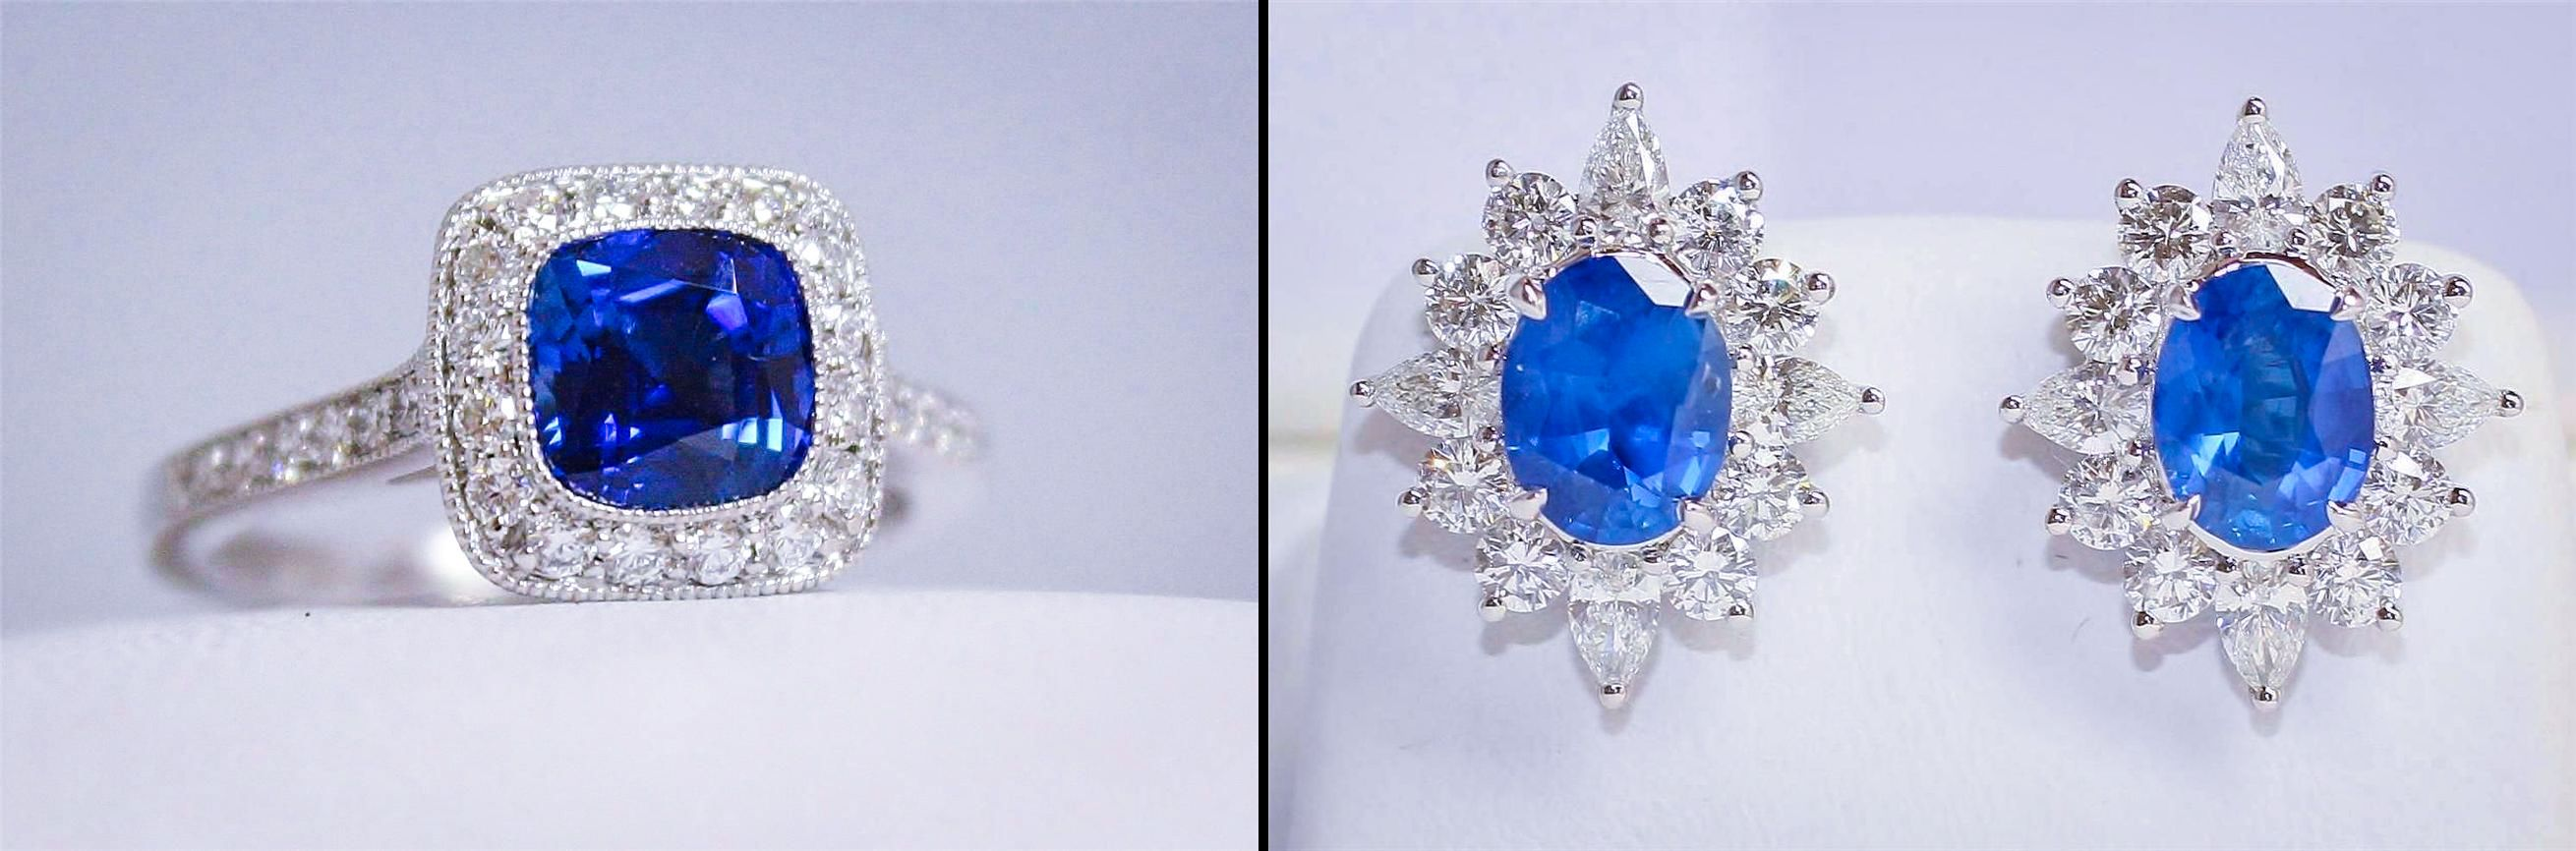 At Diamond Estate Jewelry Ers We Precious Gemstone In Two Ways Serve Clients Person Throughout Southern California From Our